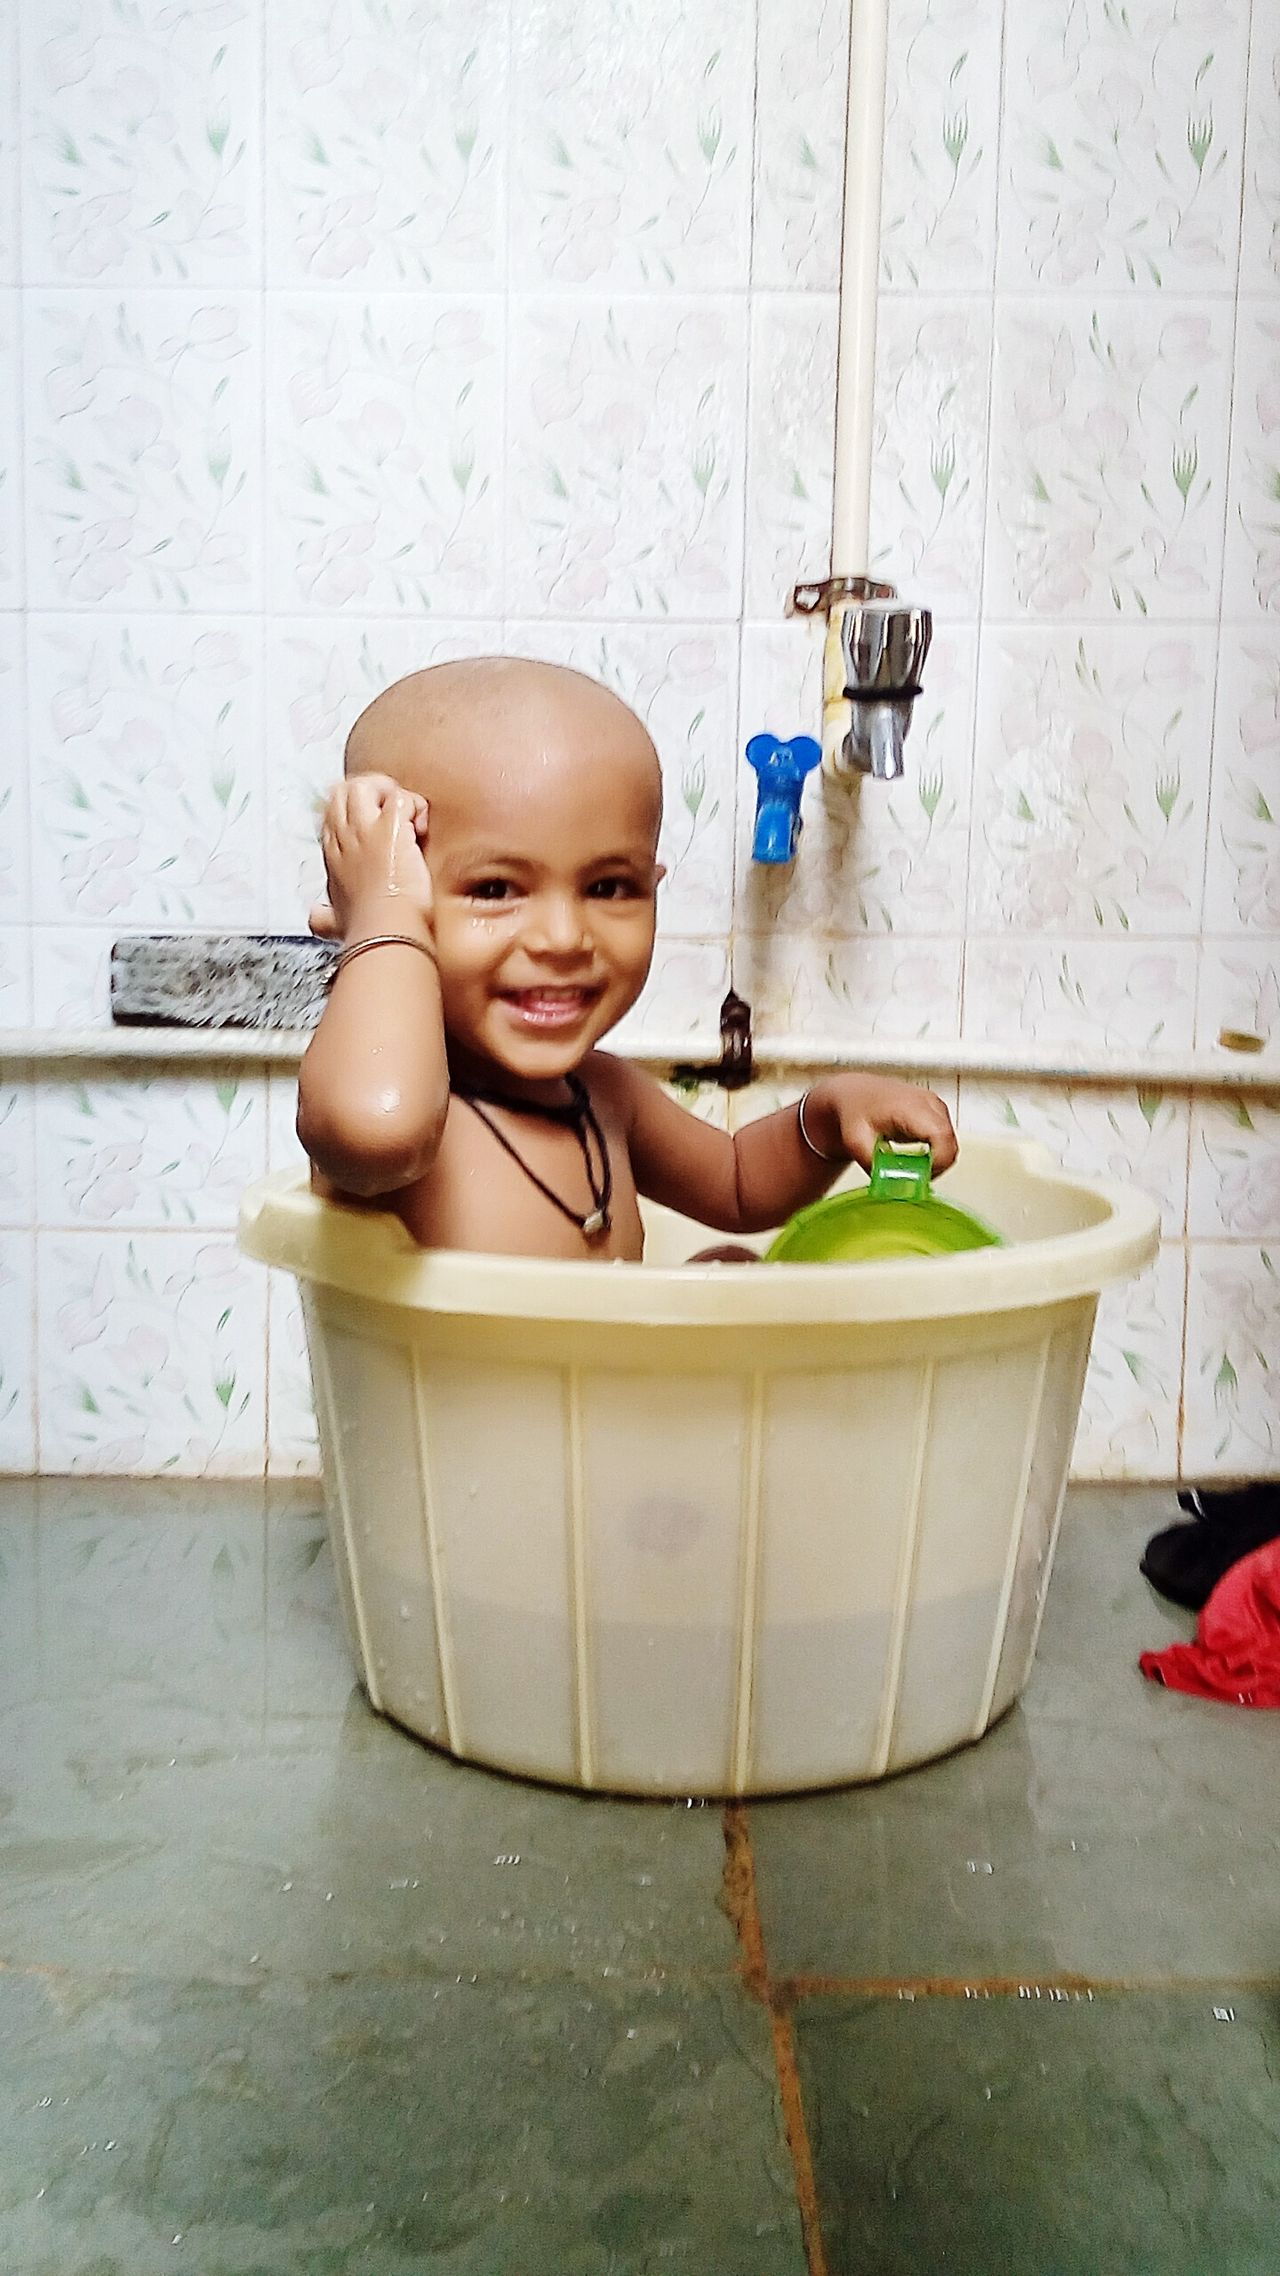 A Child Always Love To Play In Bathtub😍😘😄!specially in summer 😊 EyeEmNewHere The Portraitist - 2017 EyeEm Awards Place Of Heart Live For The Story